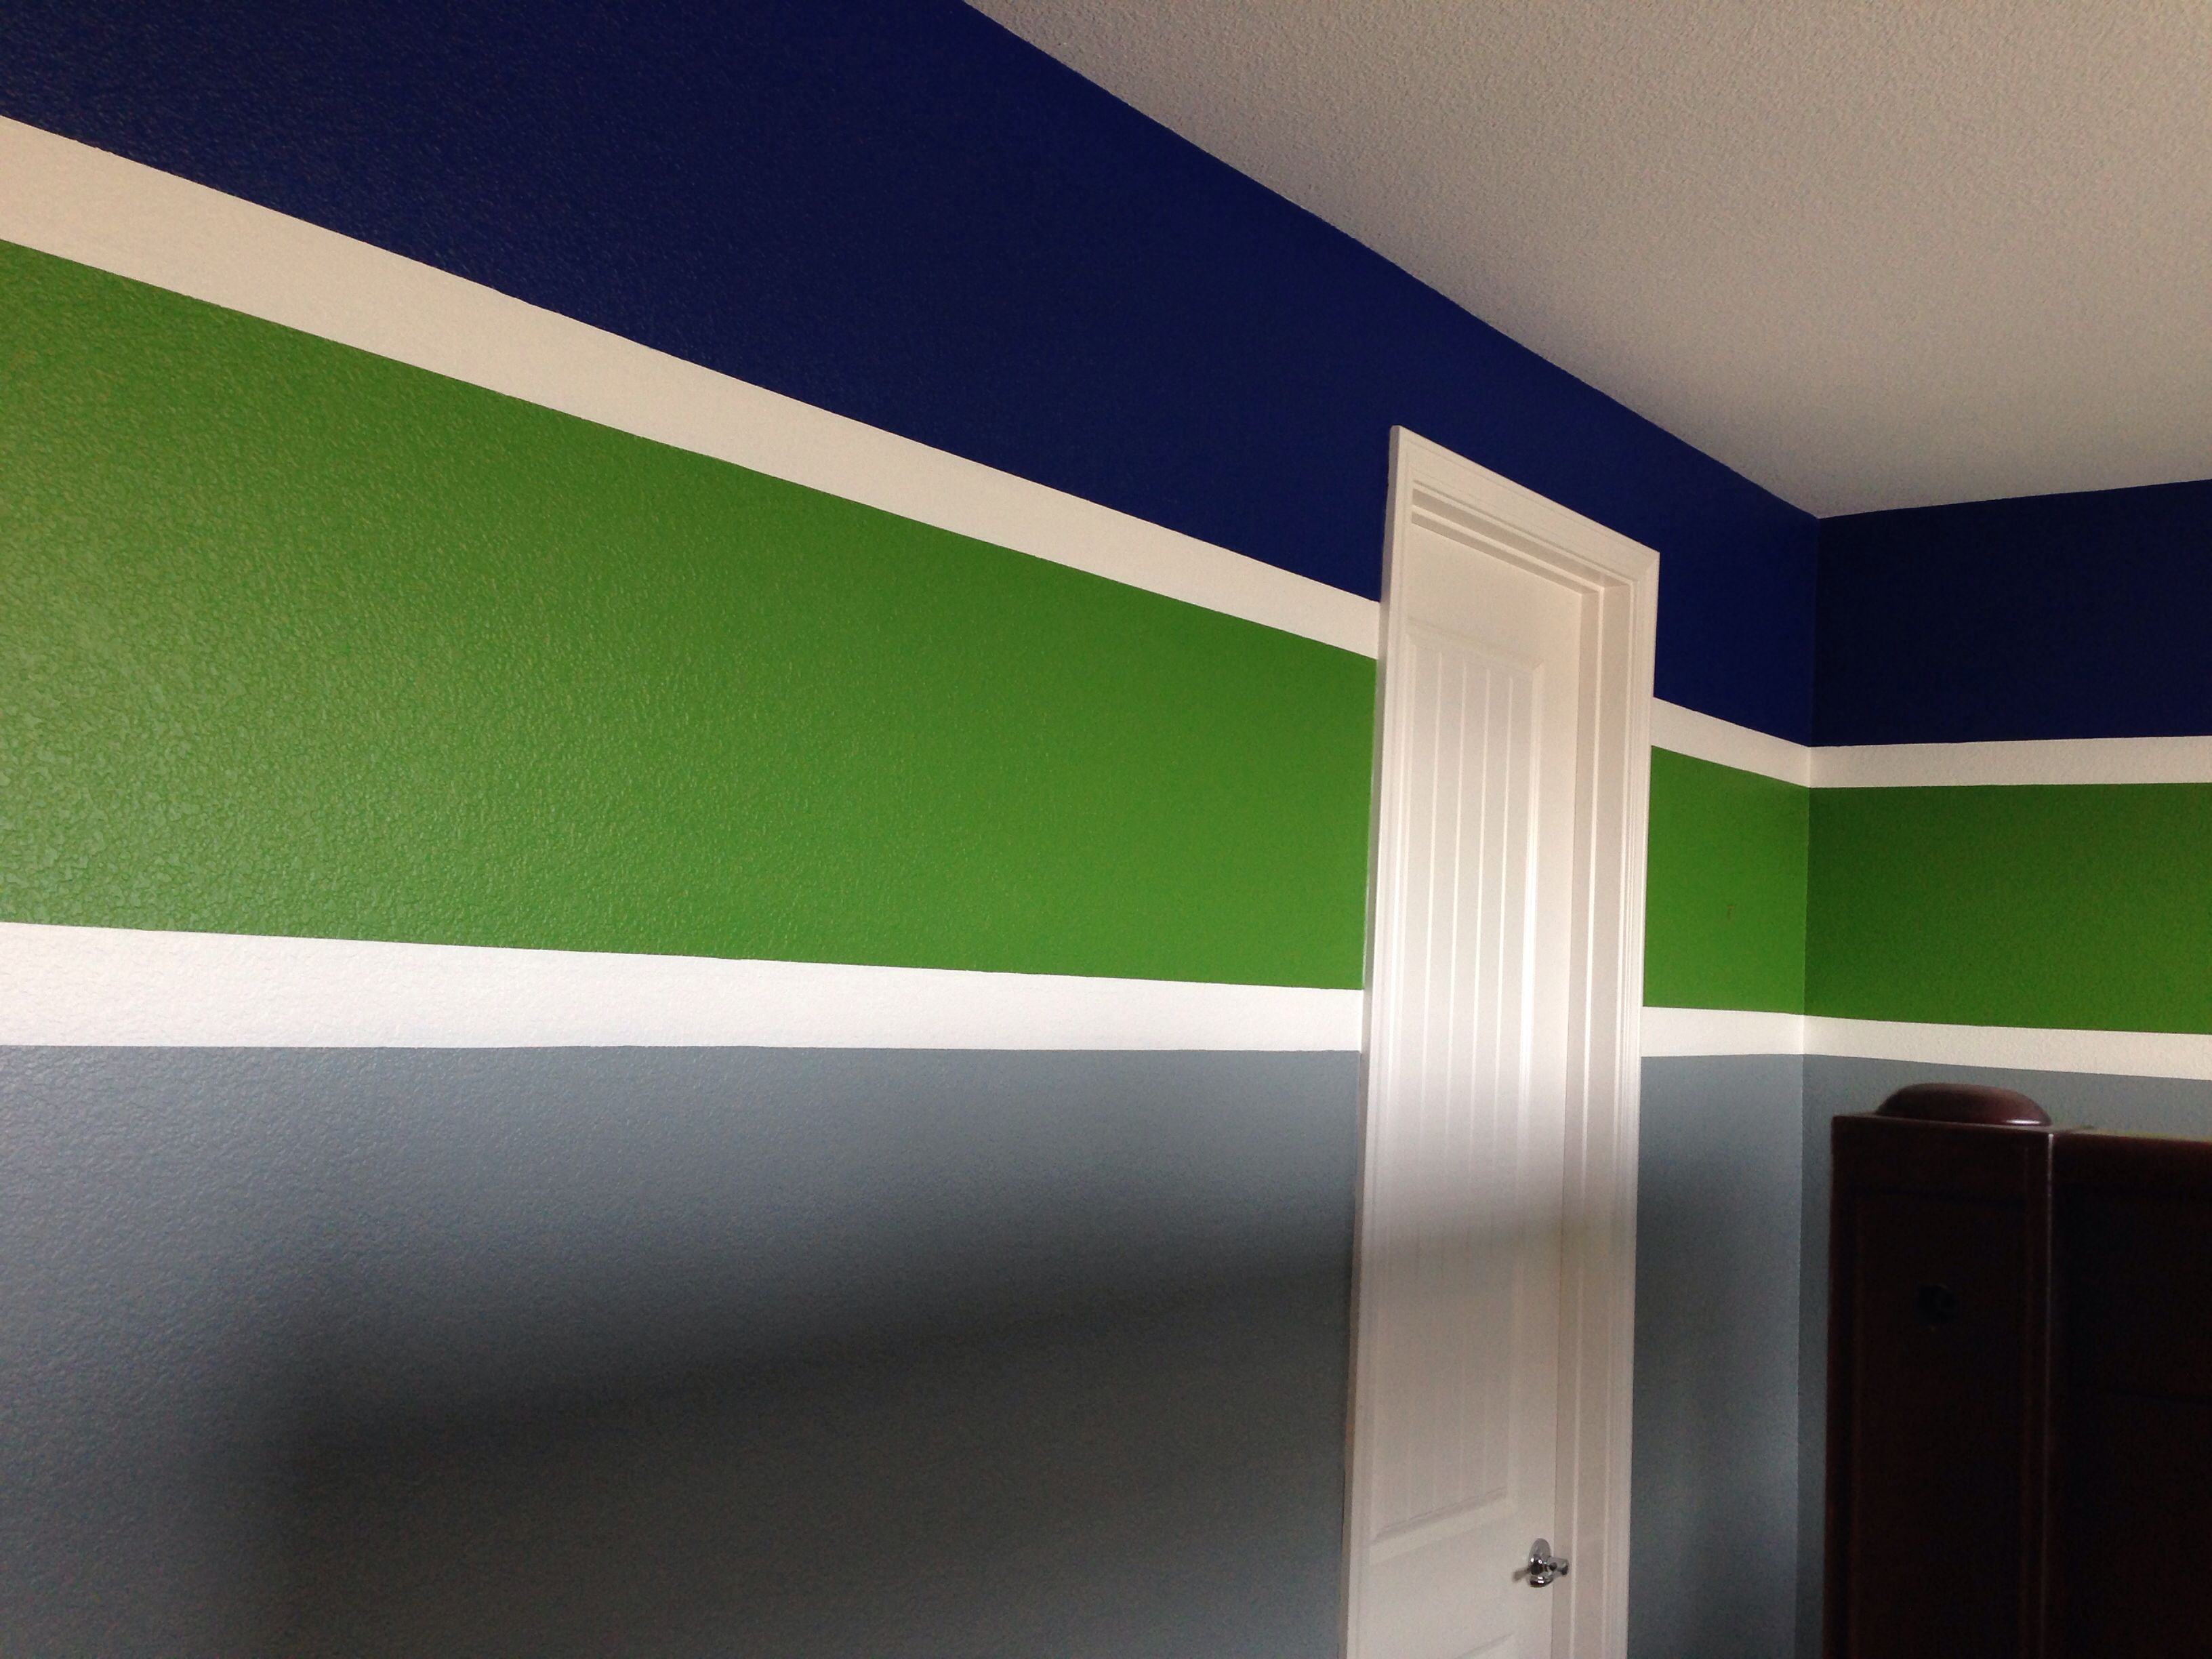 Green room paint ideas - Boy Room Paint Colors